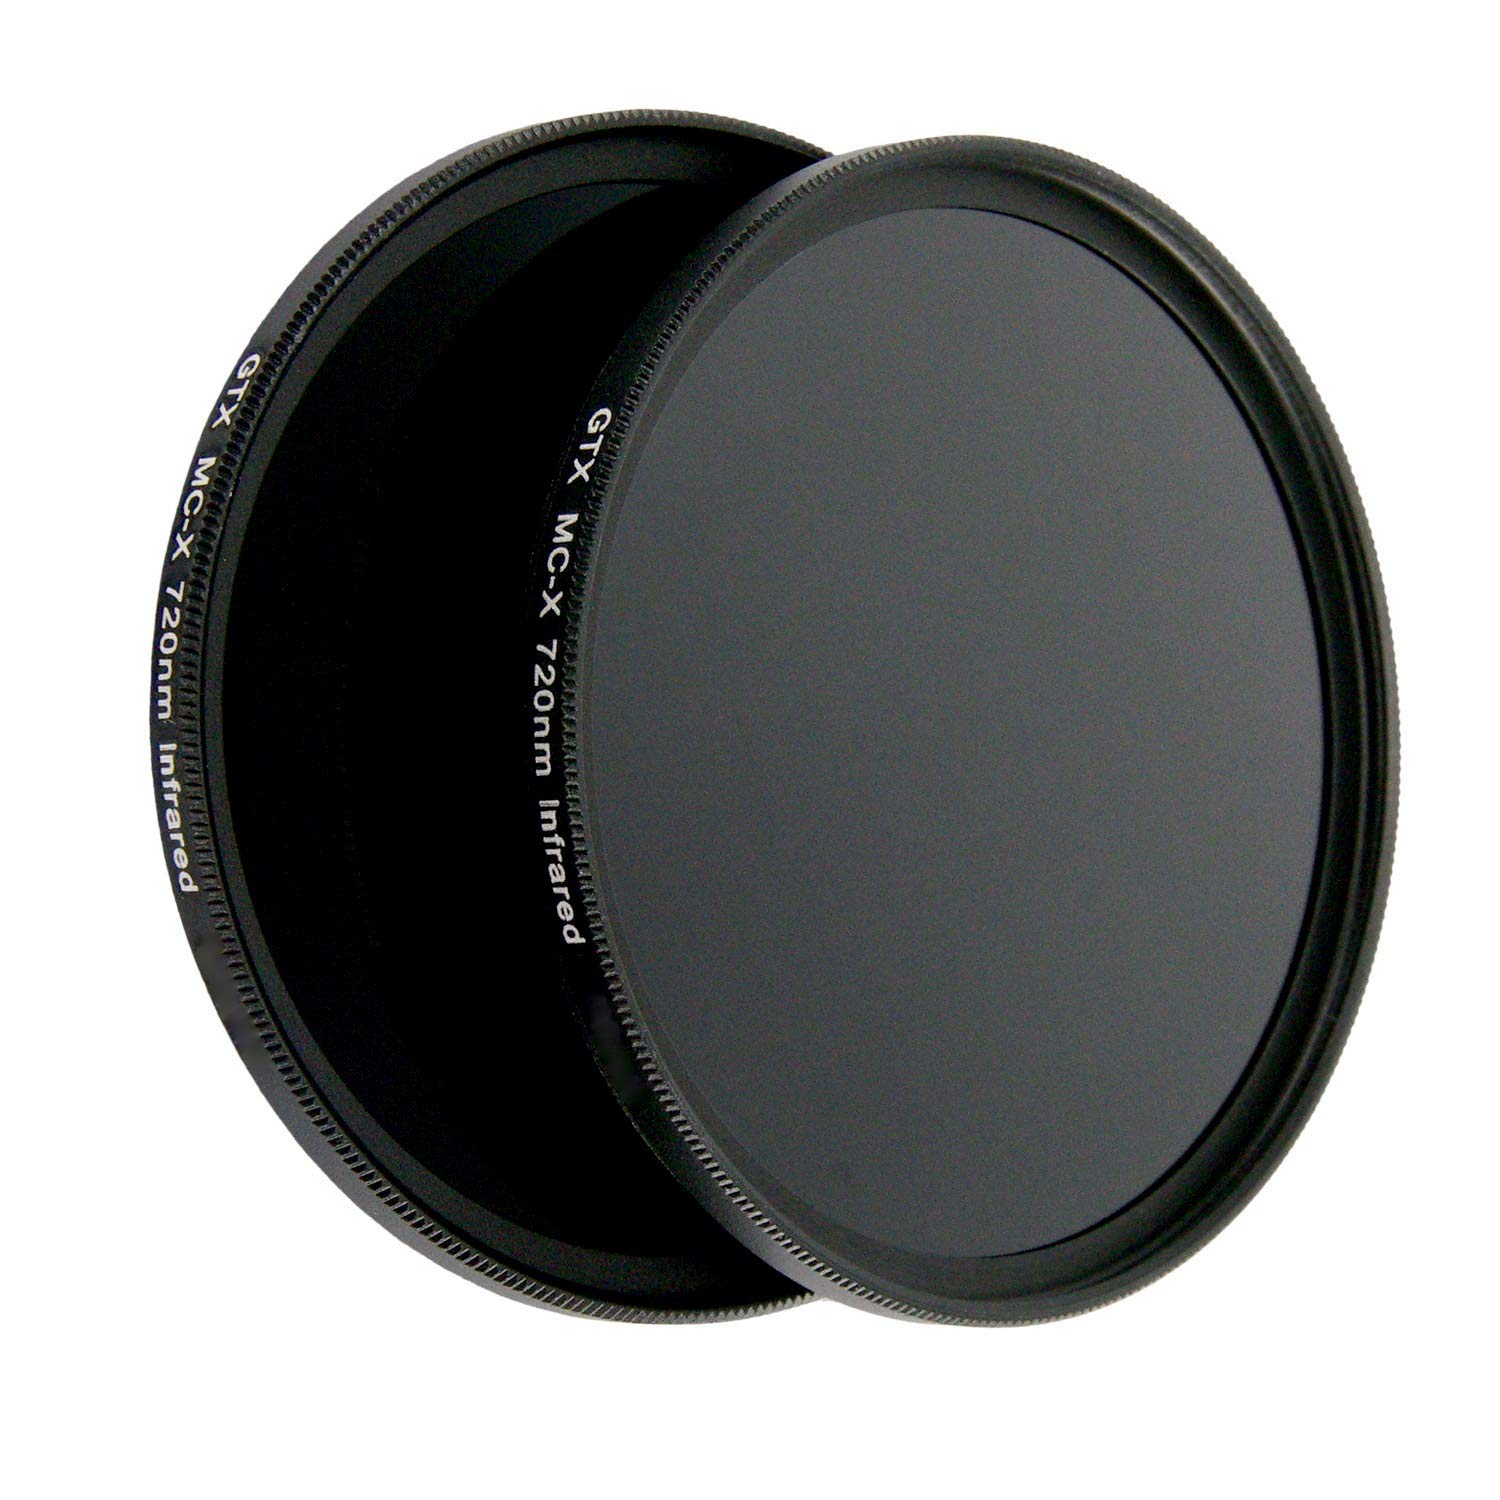 49mm X-Series IR720 IR 720nm Infrared Filter for Camera Lens Digital DSLR SLR by Sunset Foto